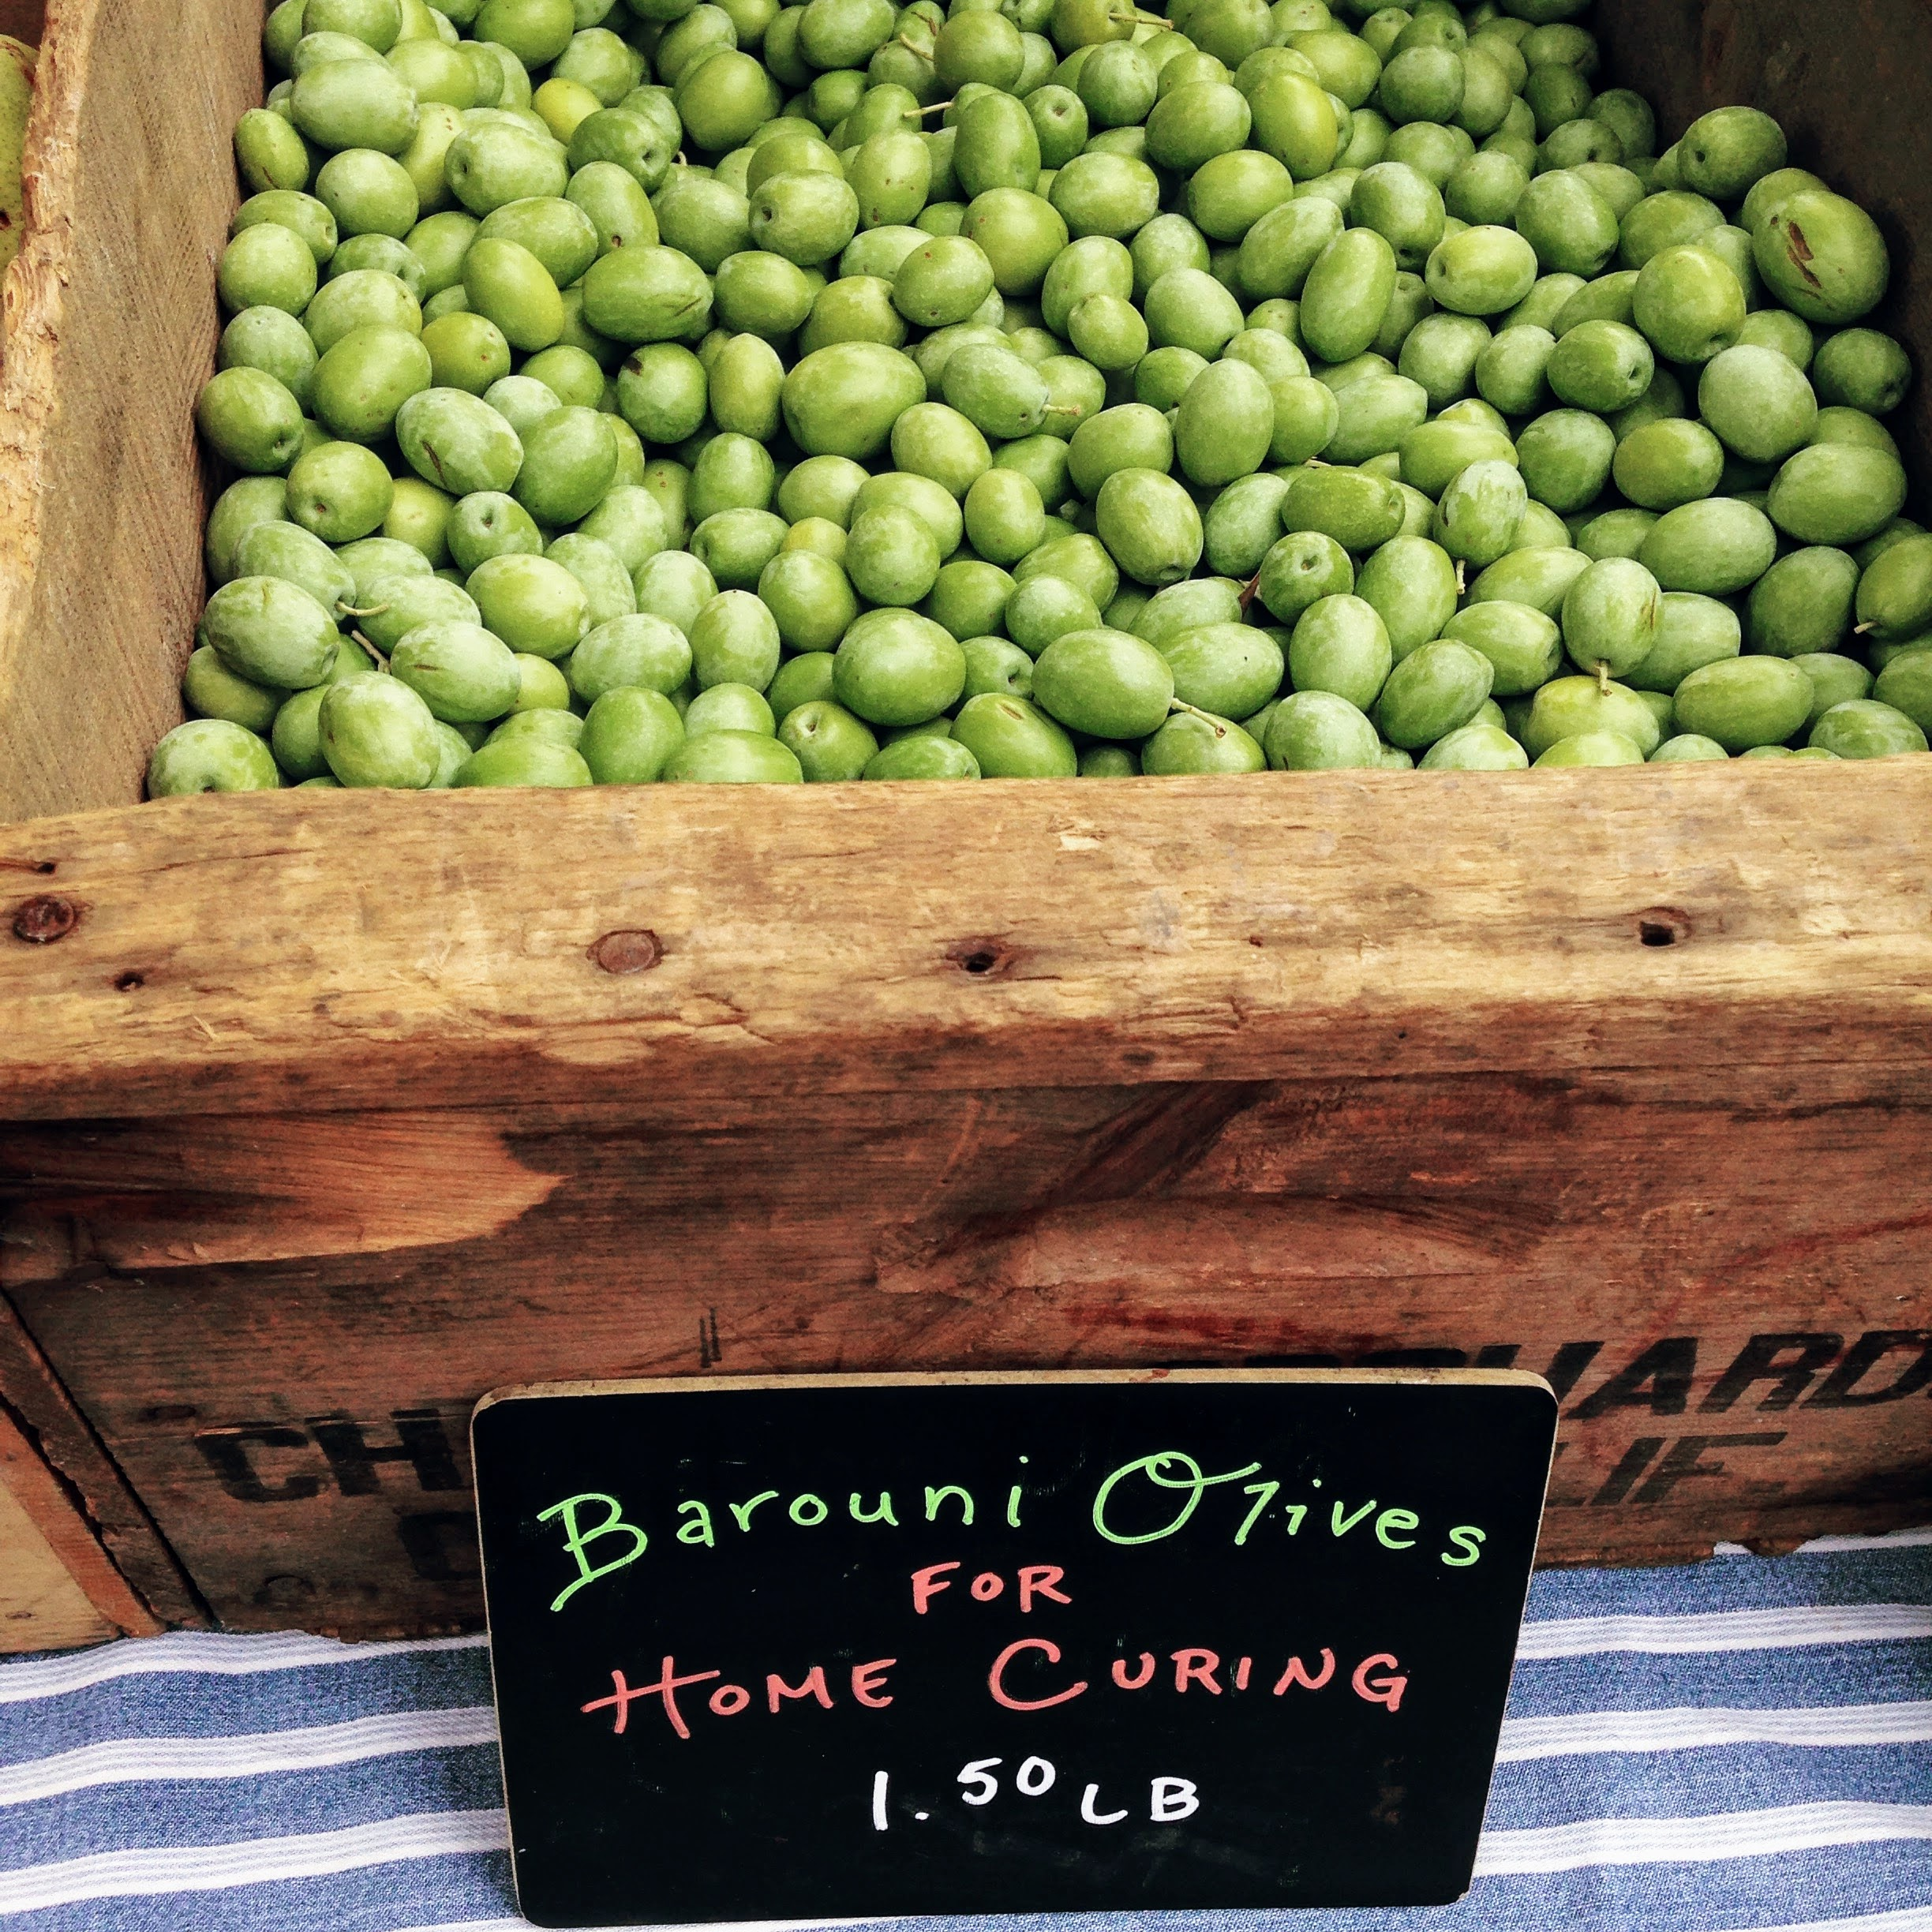 Home Curing Barouni Olives